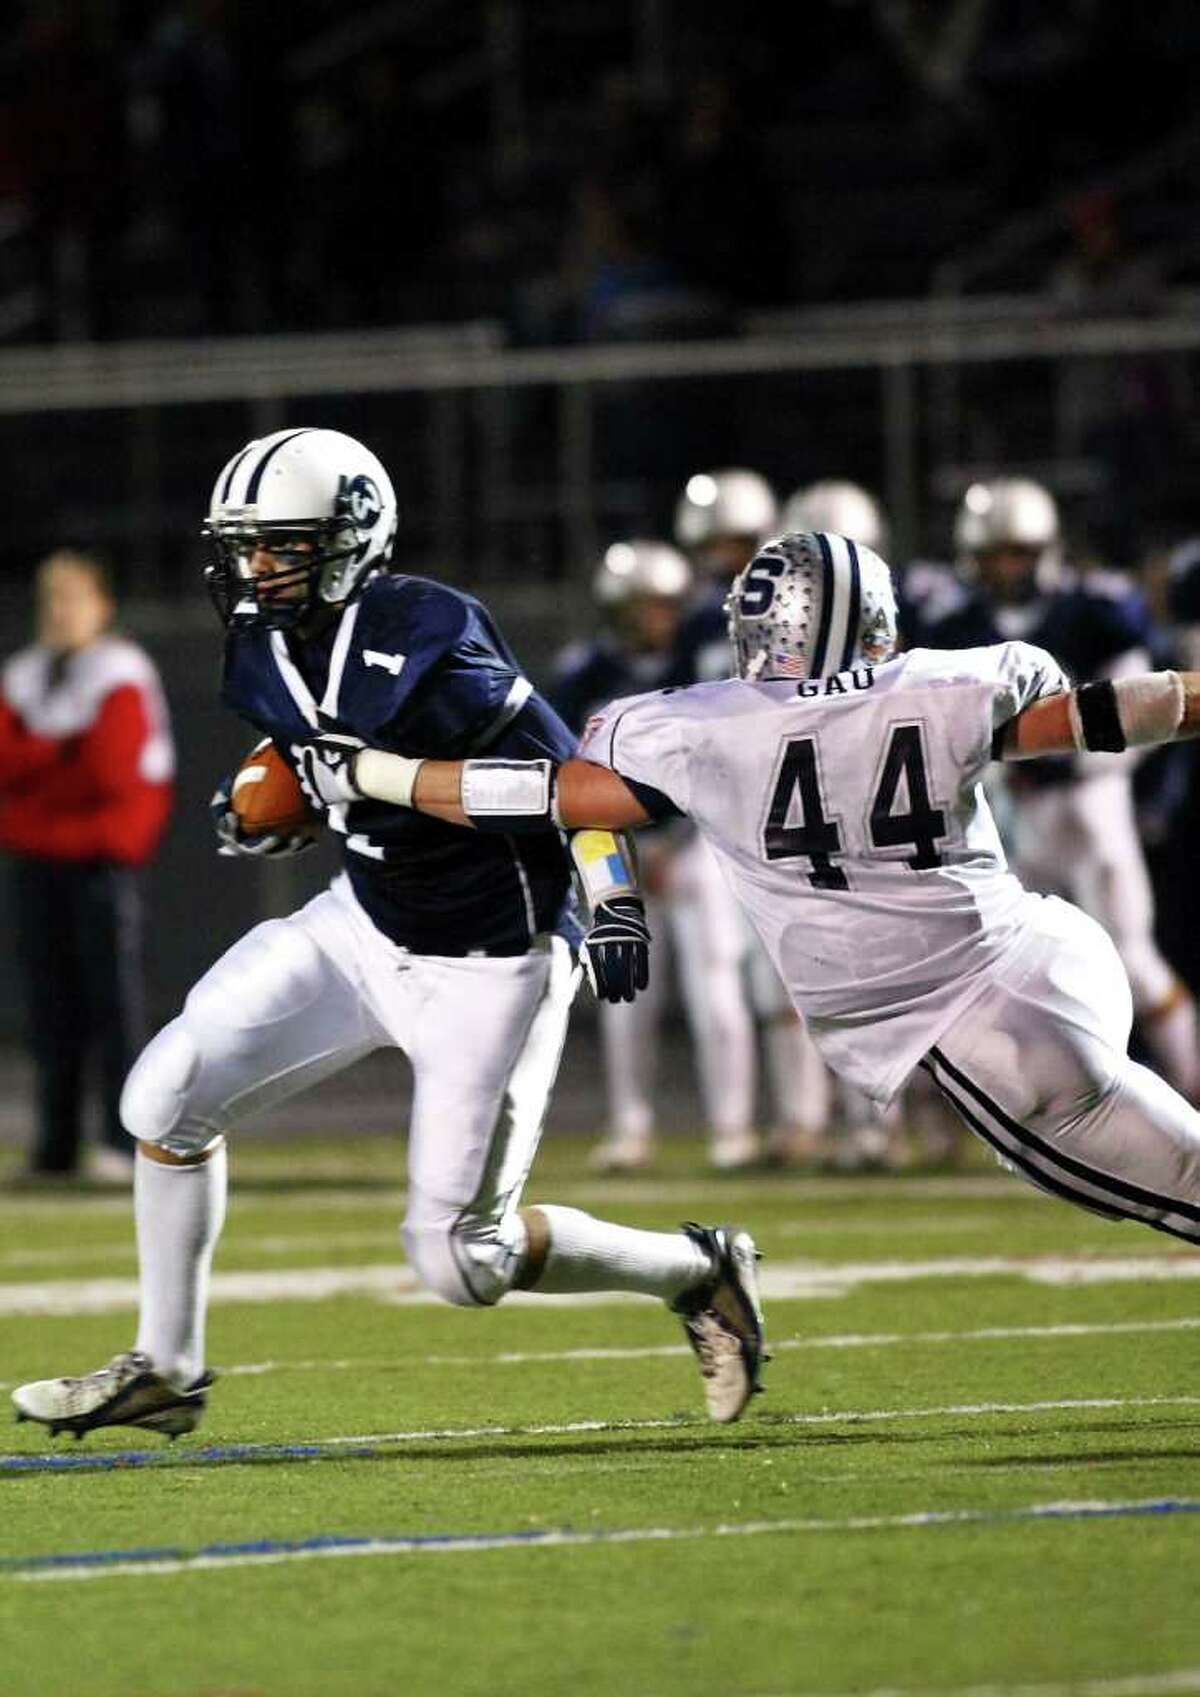 Robert Gau of Staples attempts to take down Matt Reyes of Wilton as the Wreckers play Wilton under the lights on Friday, November 5th in Wilton, Conn.